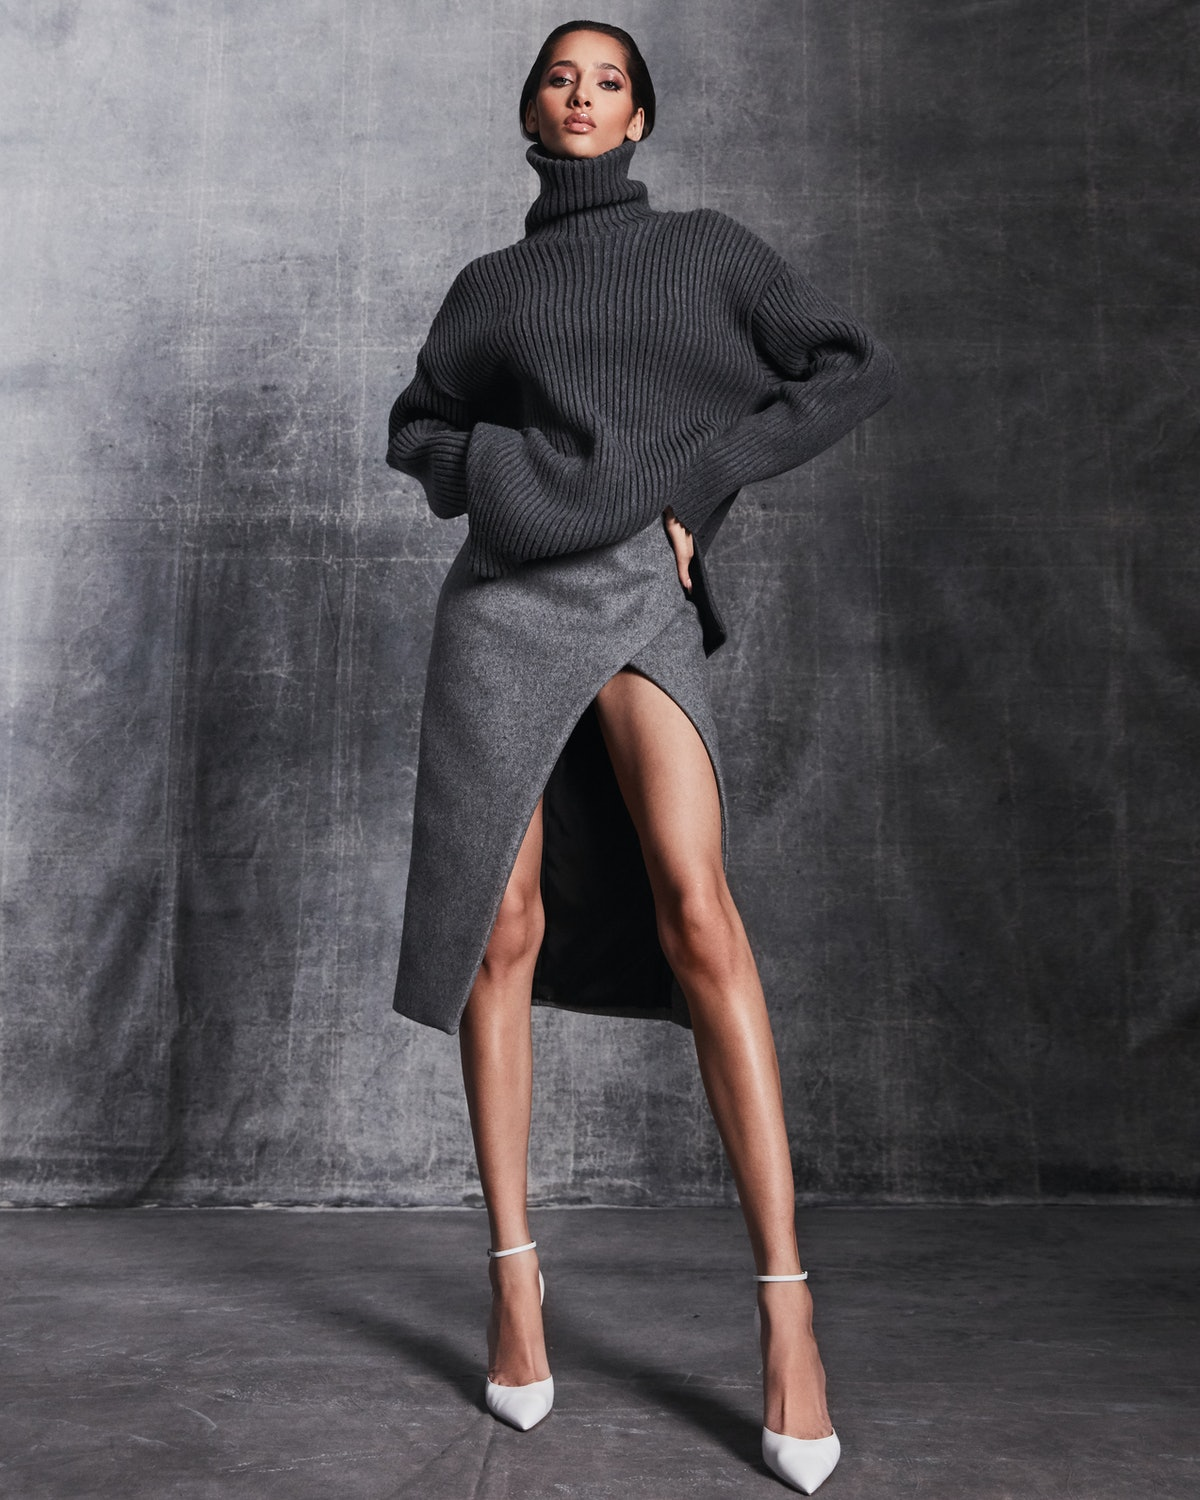 model in gray skirt and sweater